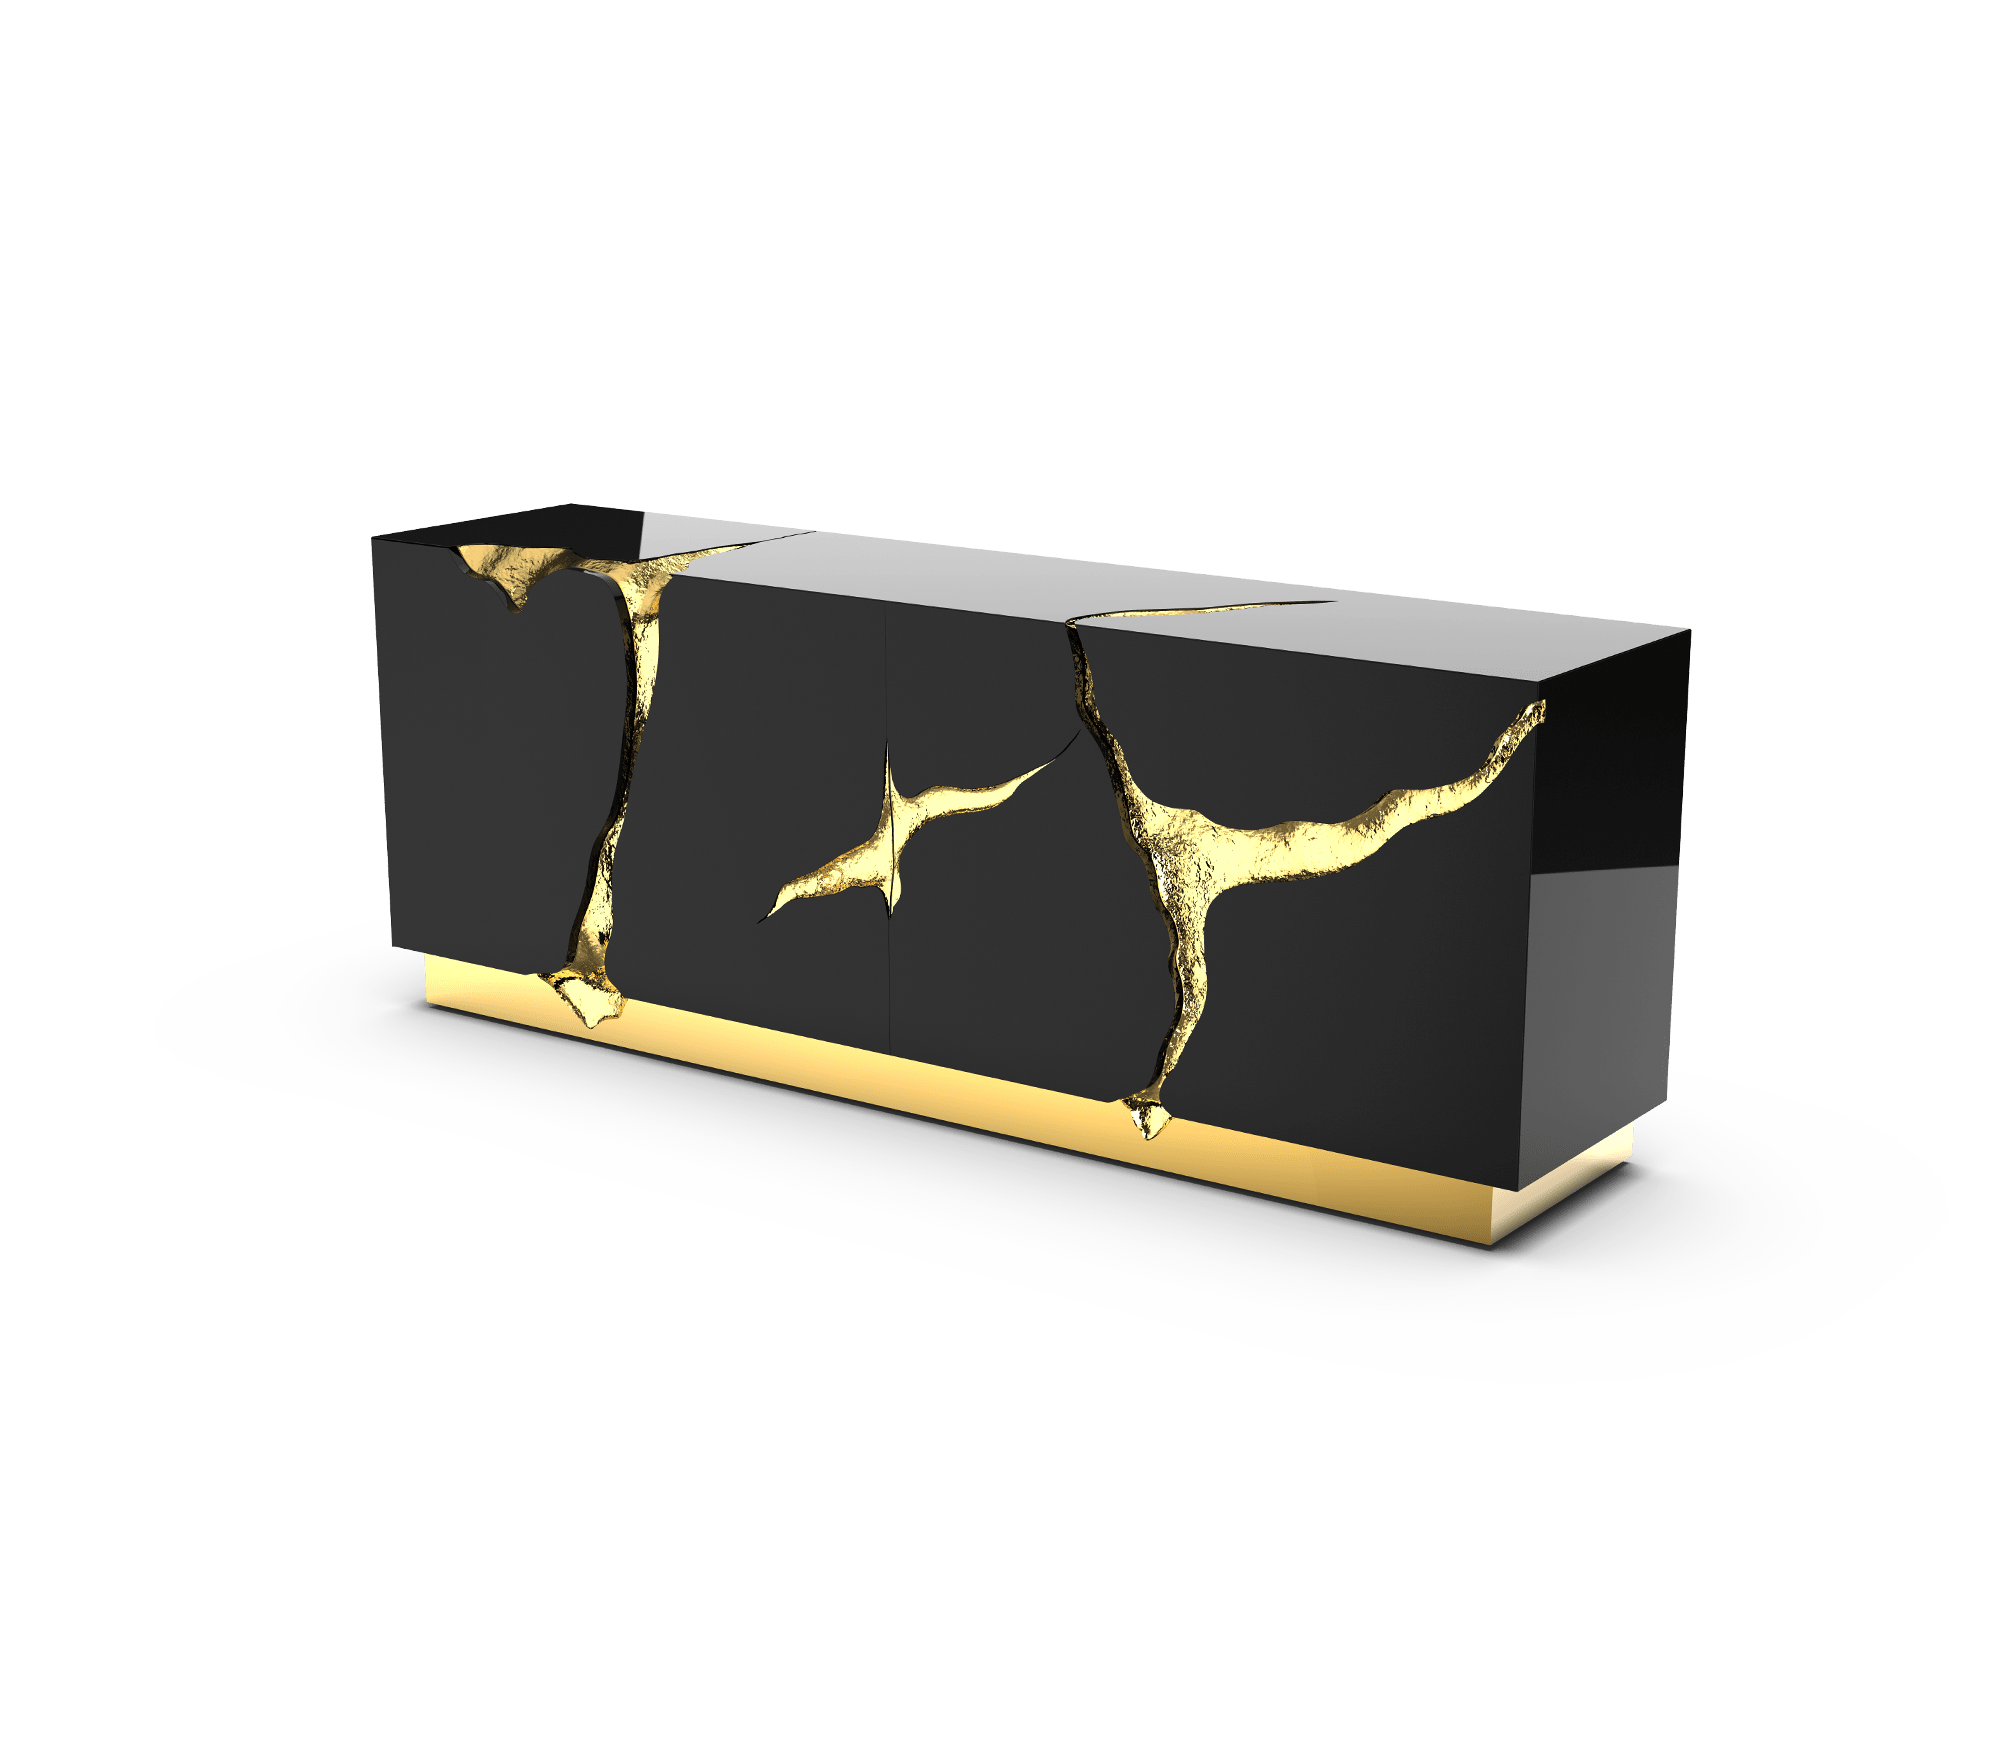 Lapiaz Black Sideboard by Boca do Lobo